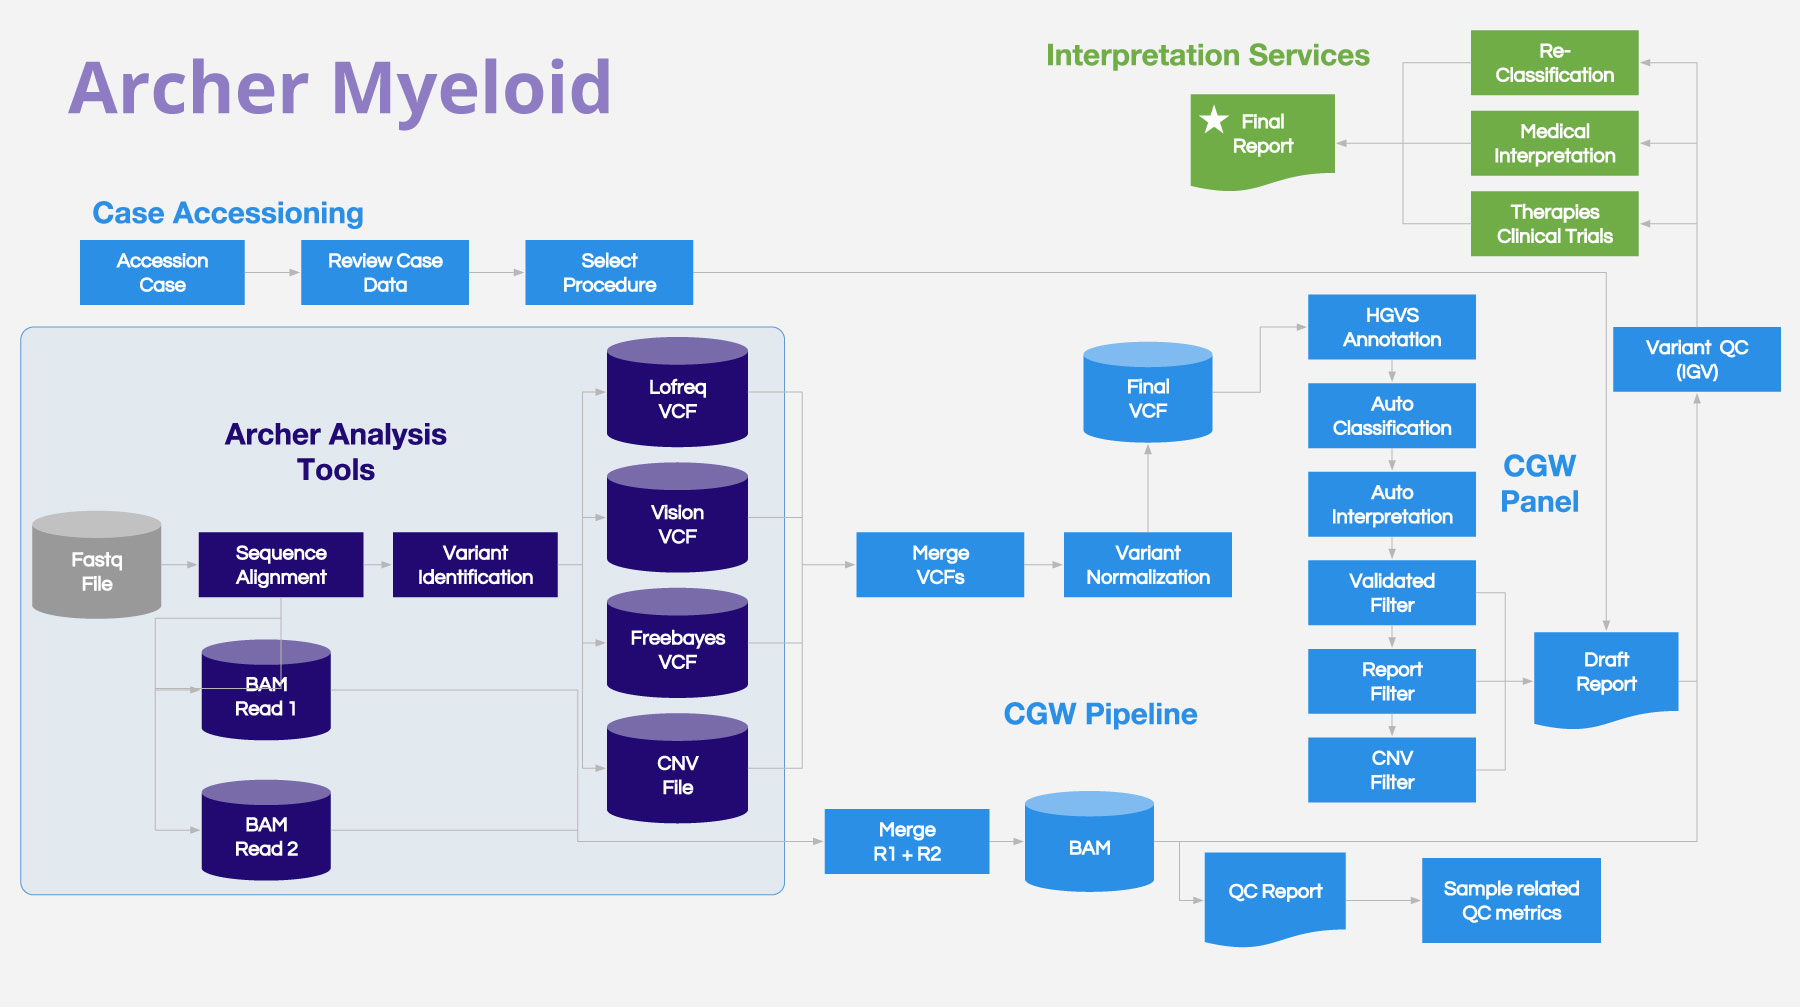 Archer Myeloid Example Workflow